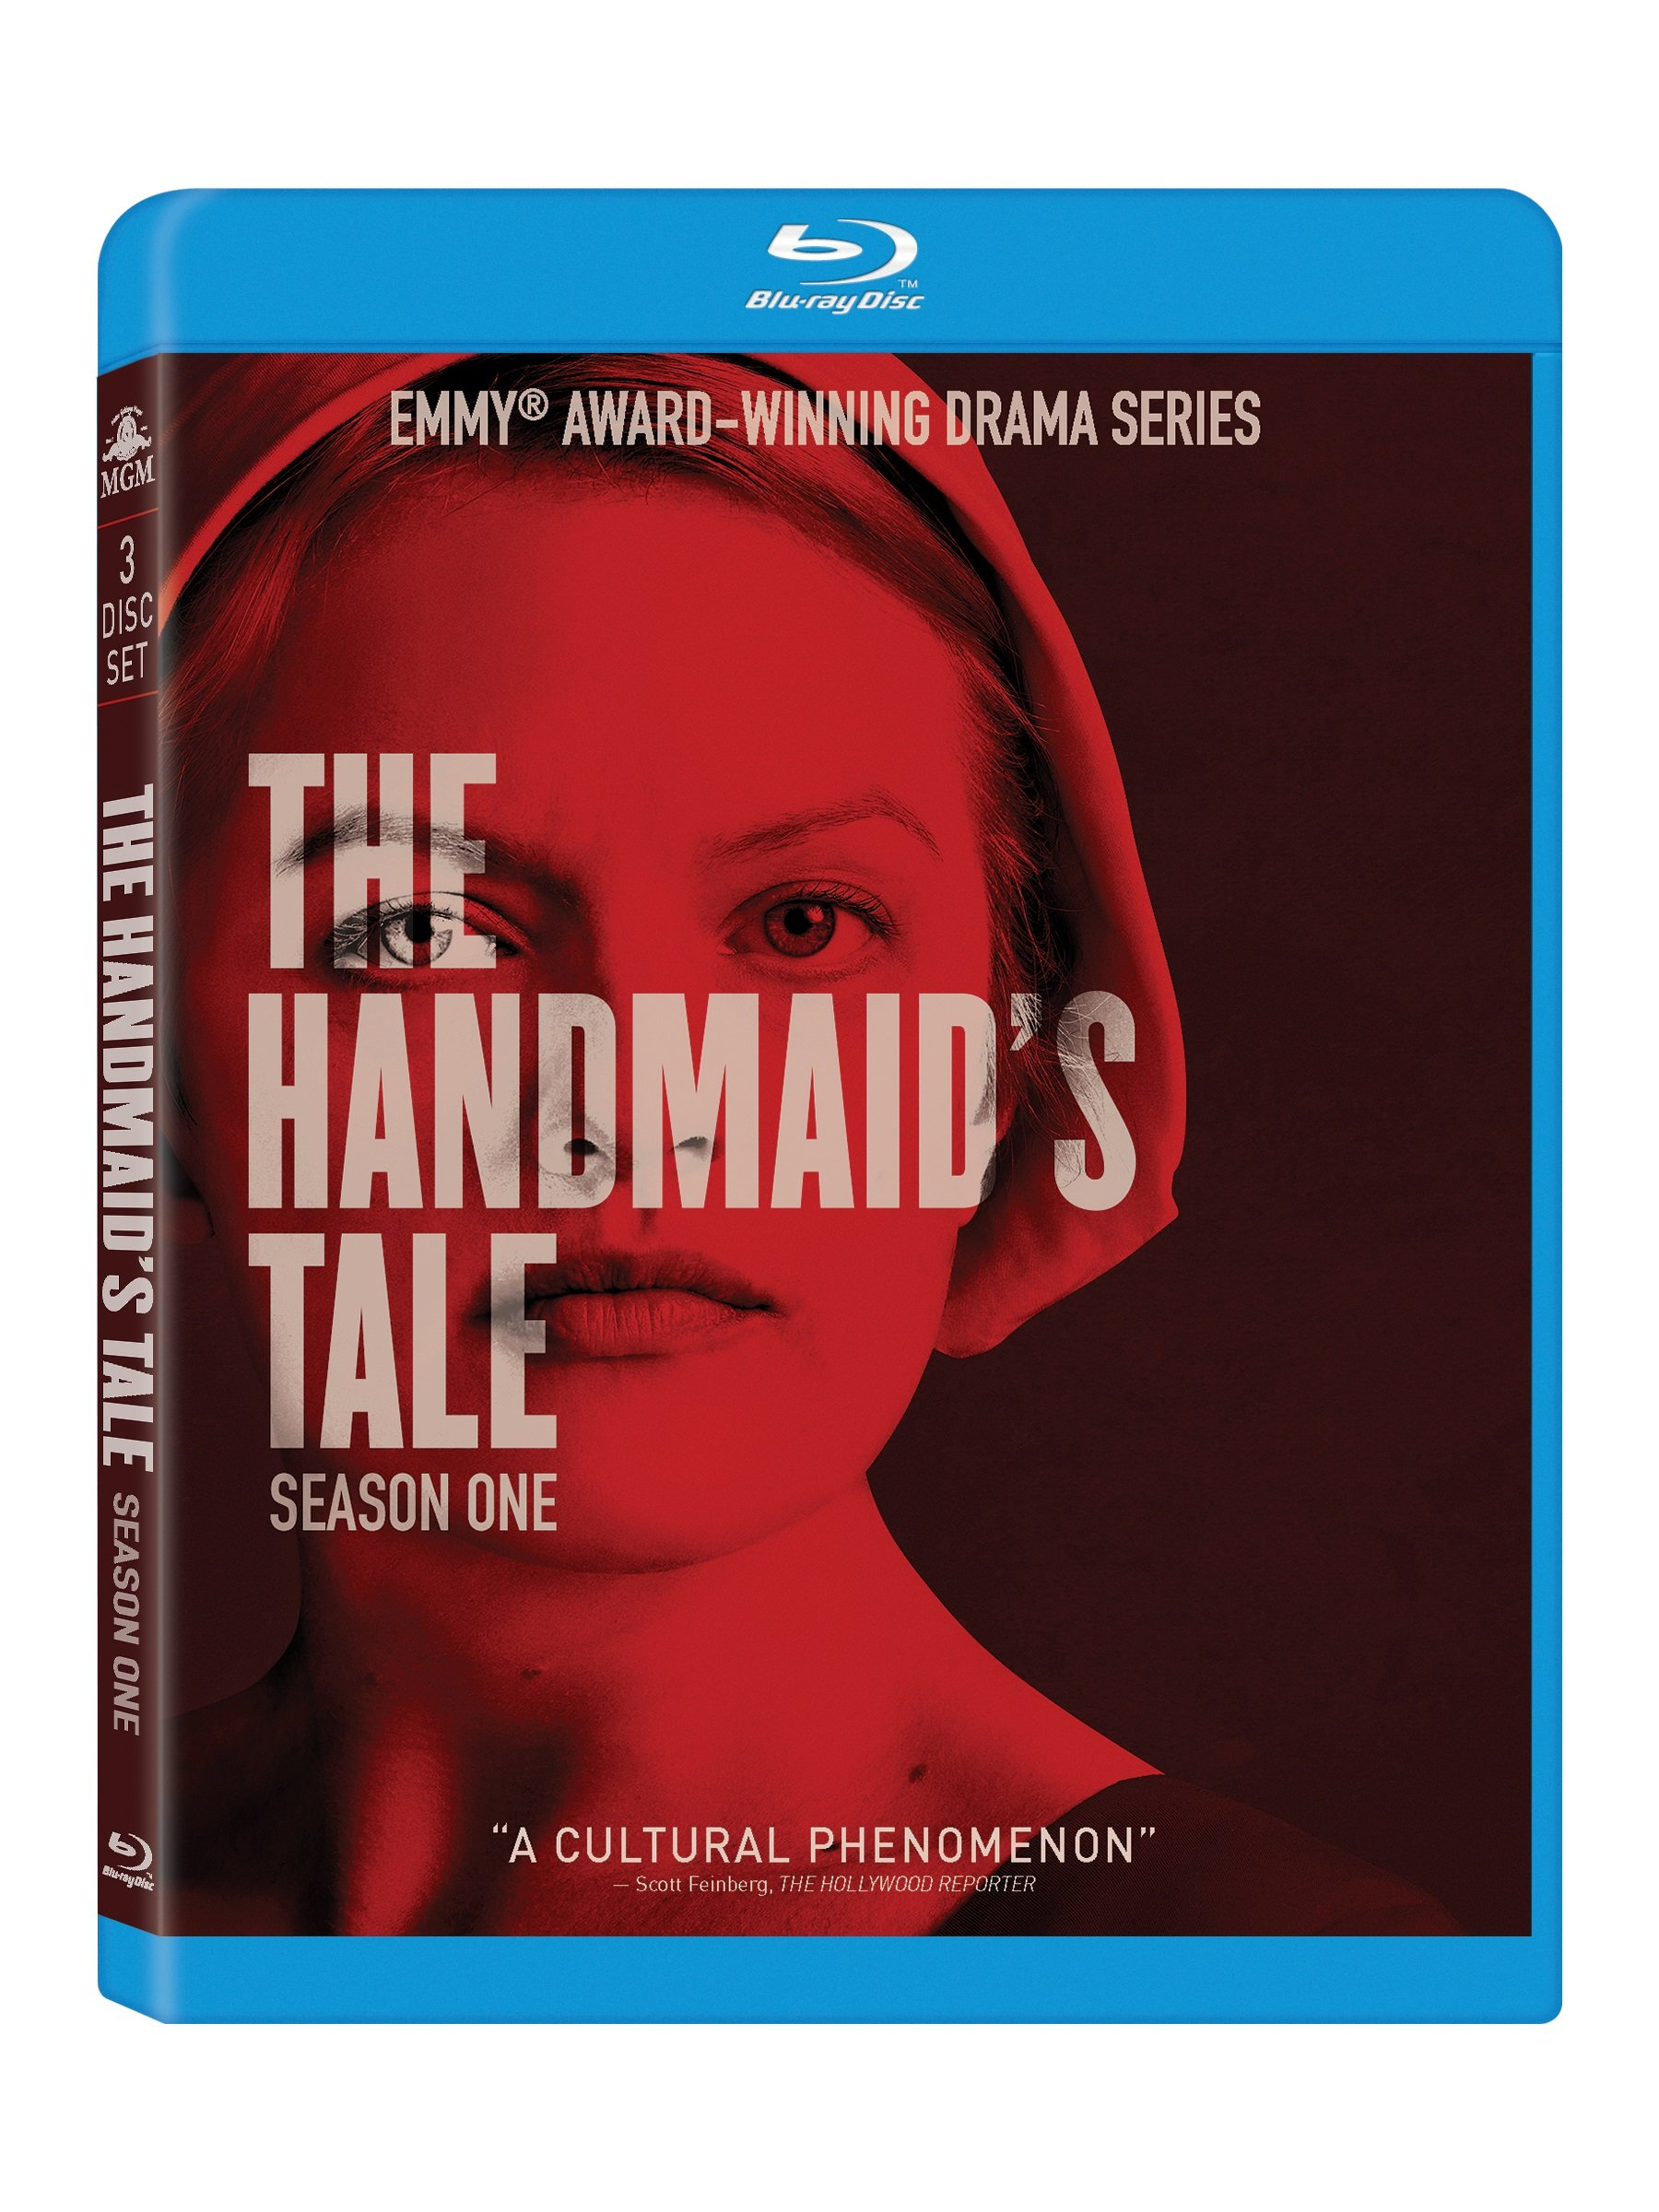 Handmaid S Tale The Season 1 Blu Ray Buy Online In Angola At Angola Desertcart Com Productid 64457490